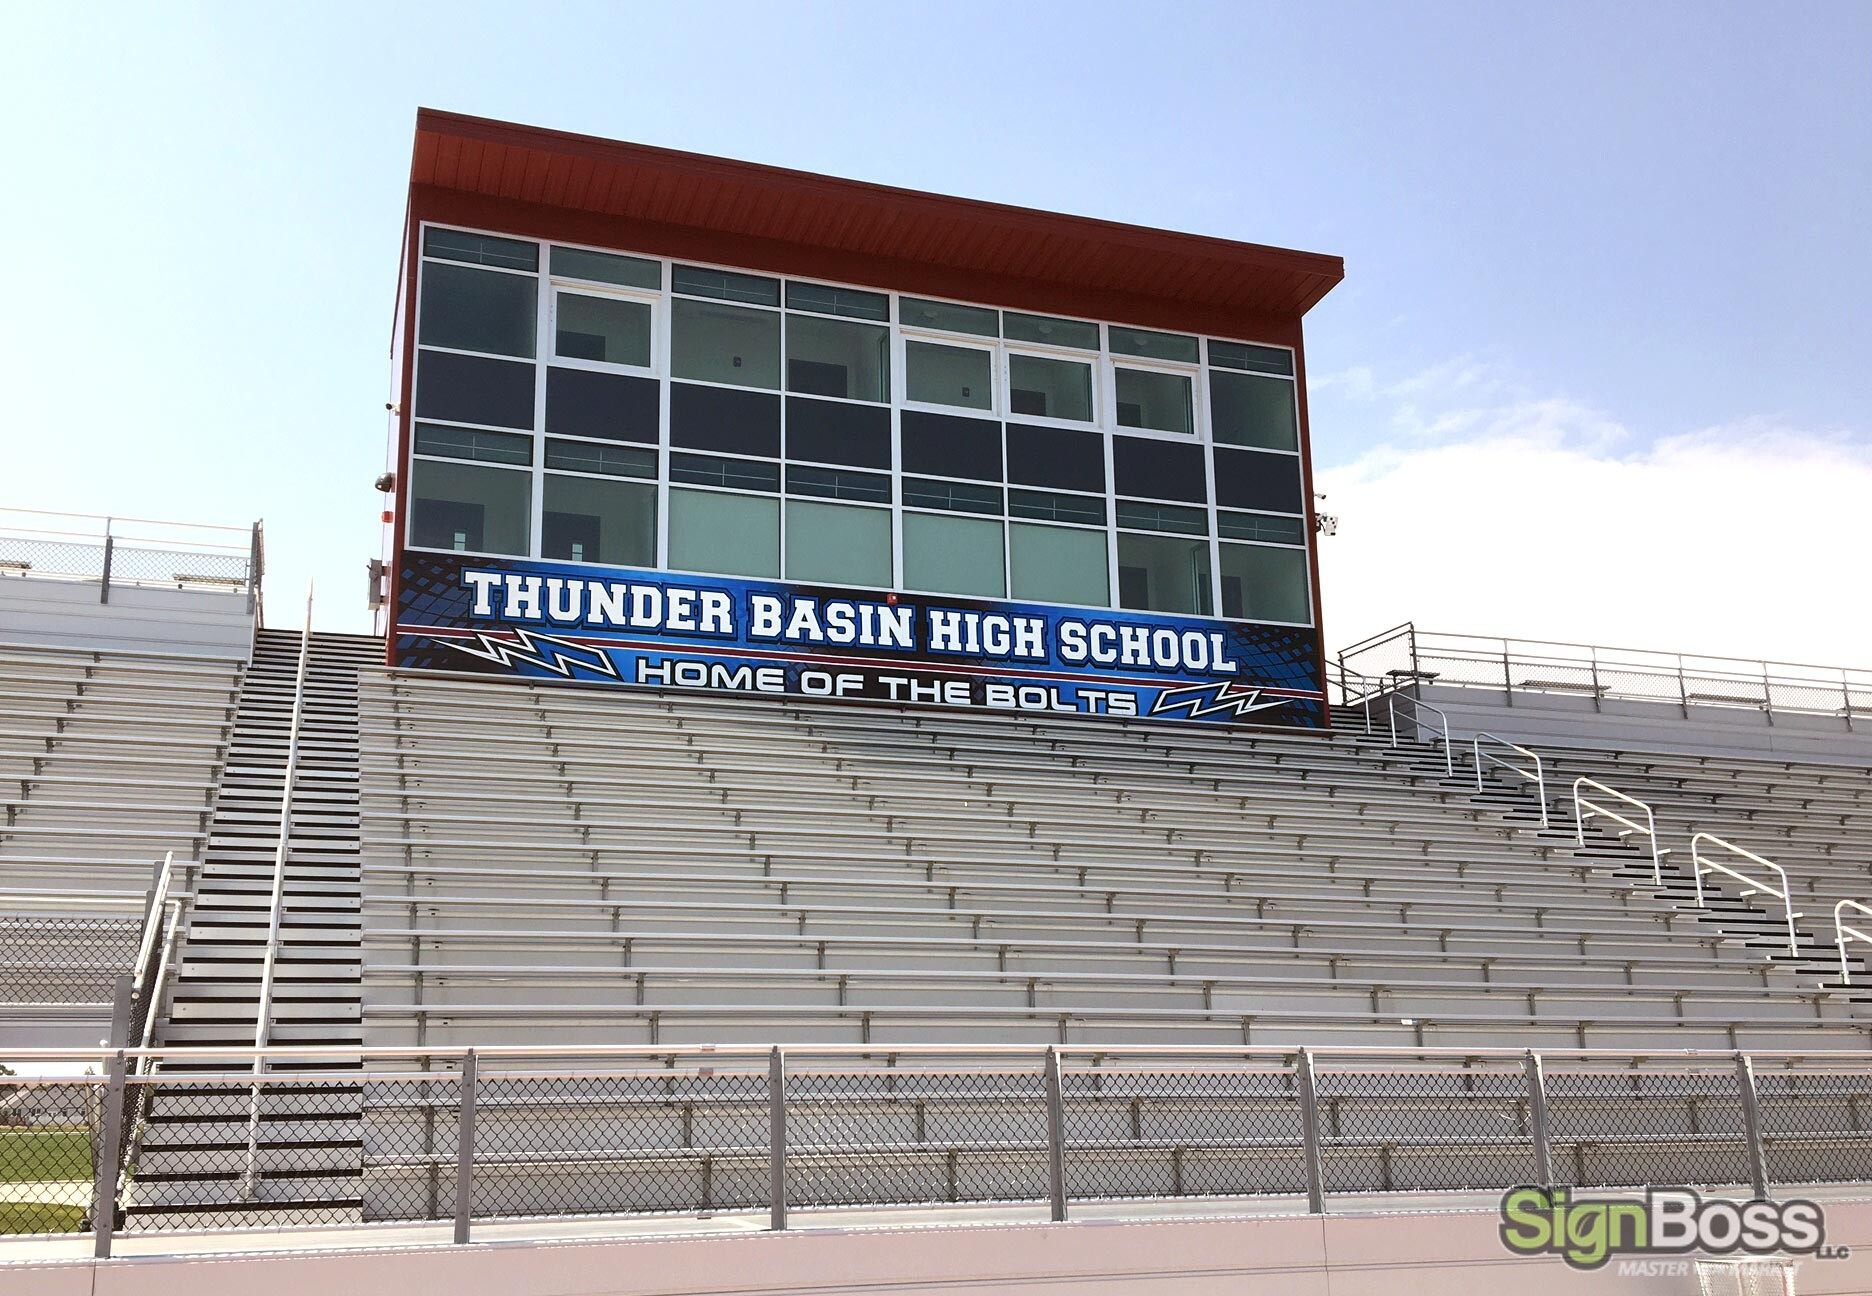 School spirit stadium graphics and fence banners in Gillette WY